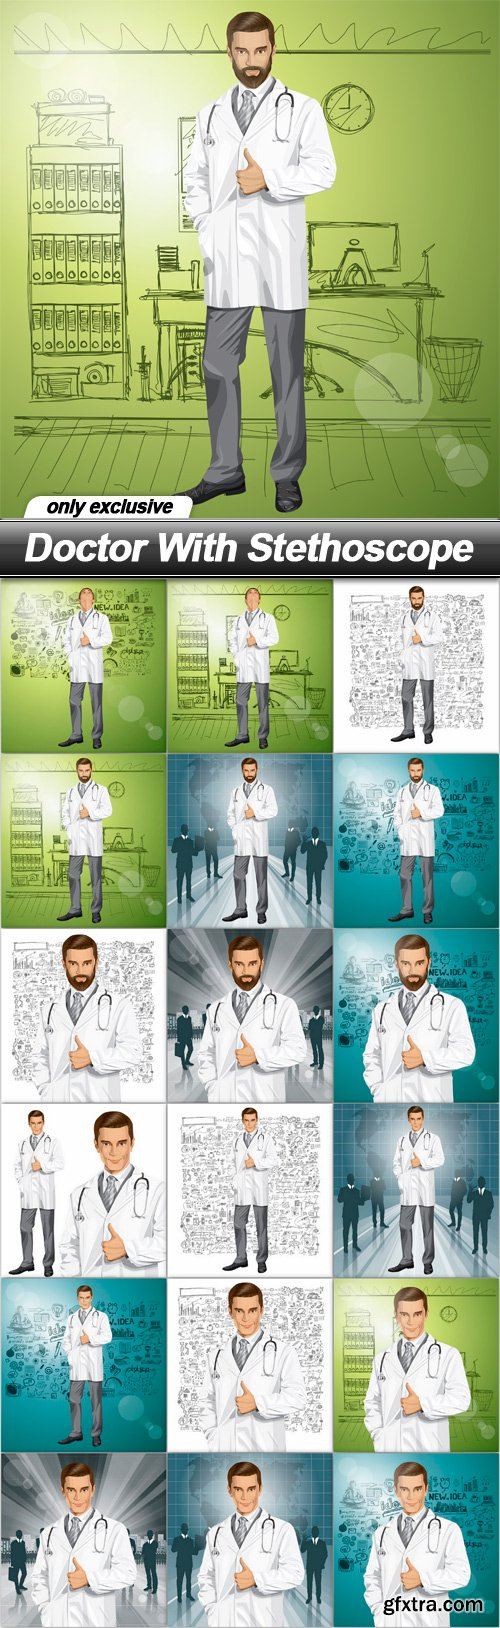 Doctor With Stethoscope - 18 EPS